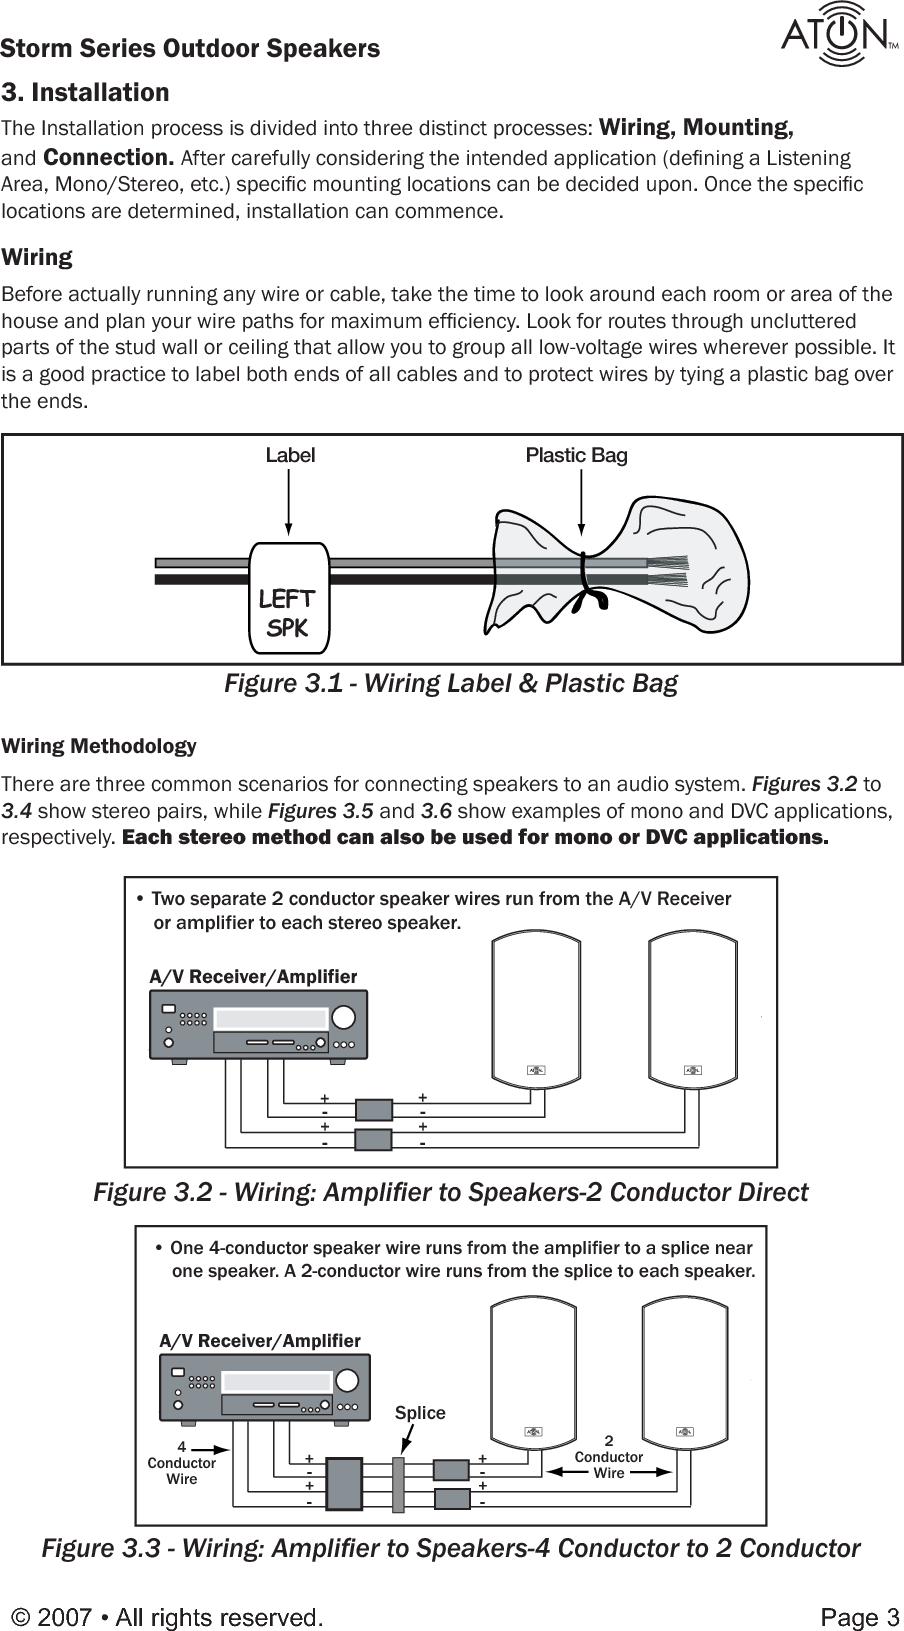 Pdf O61w Manual Aton Outdoorspeakers User Low Voltage Wiring Guide Page 5 Of 12